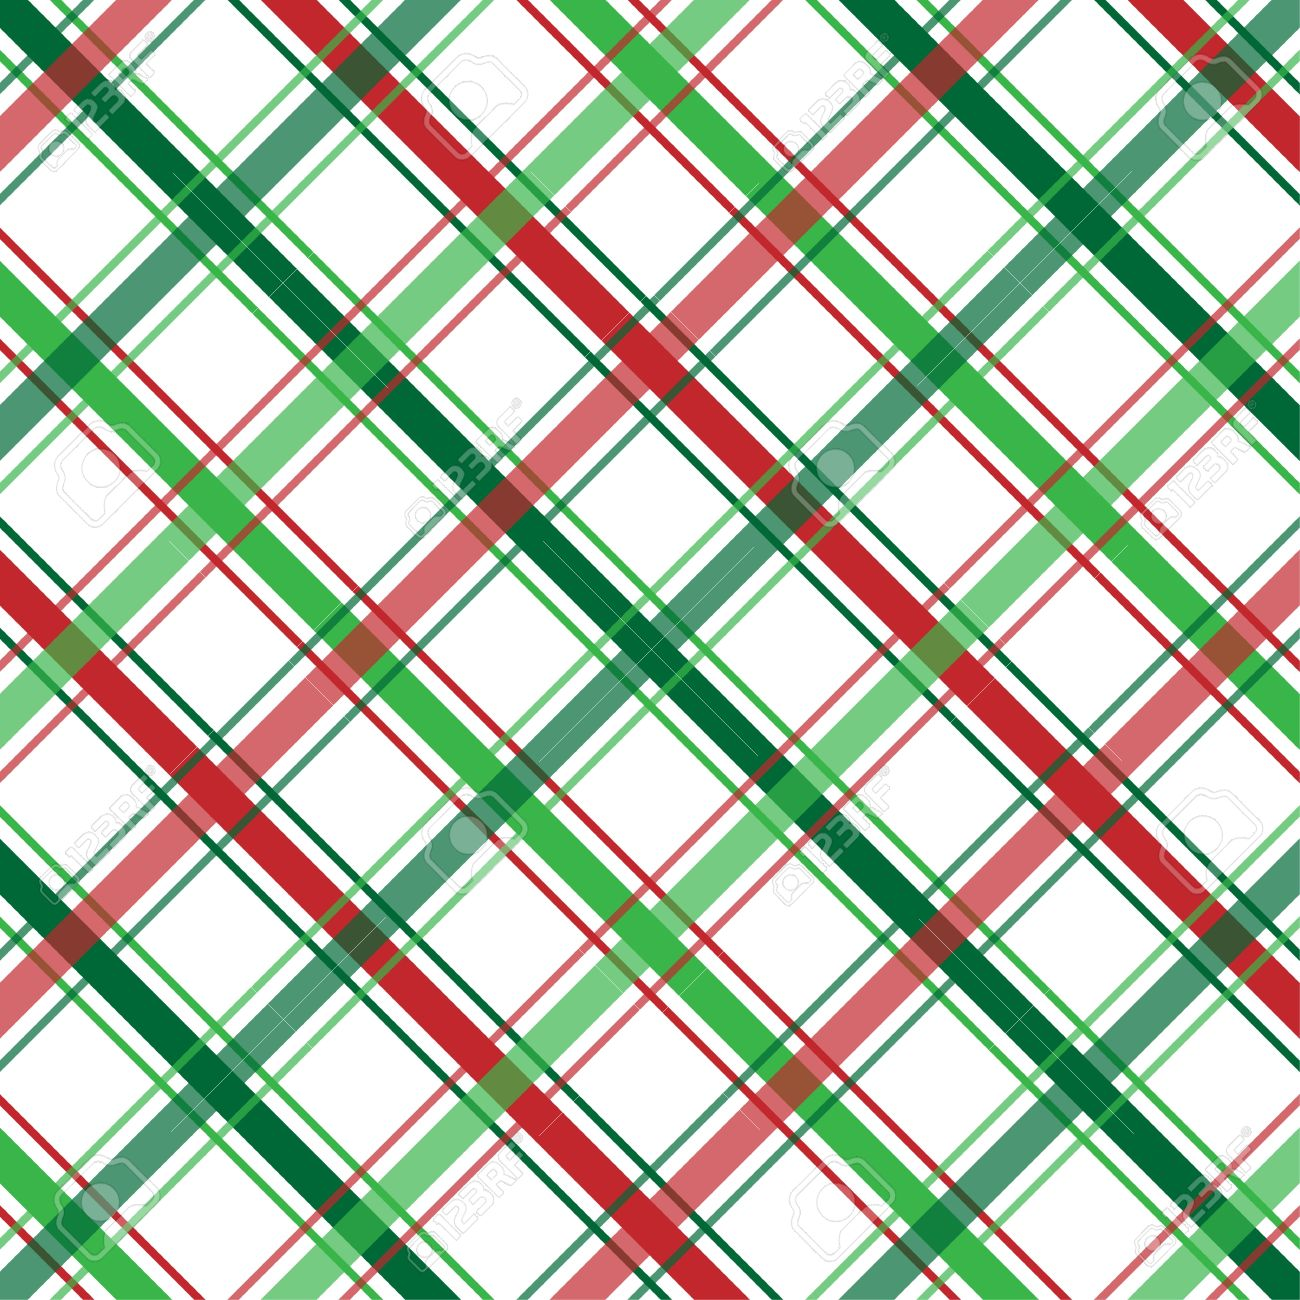 Christmas Green And Red.Stock Illustration